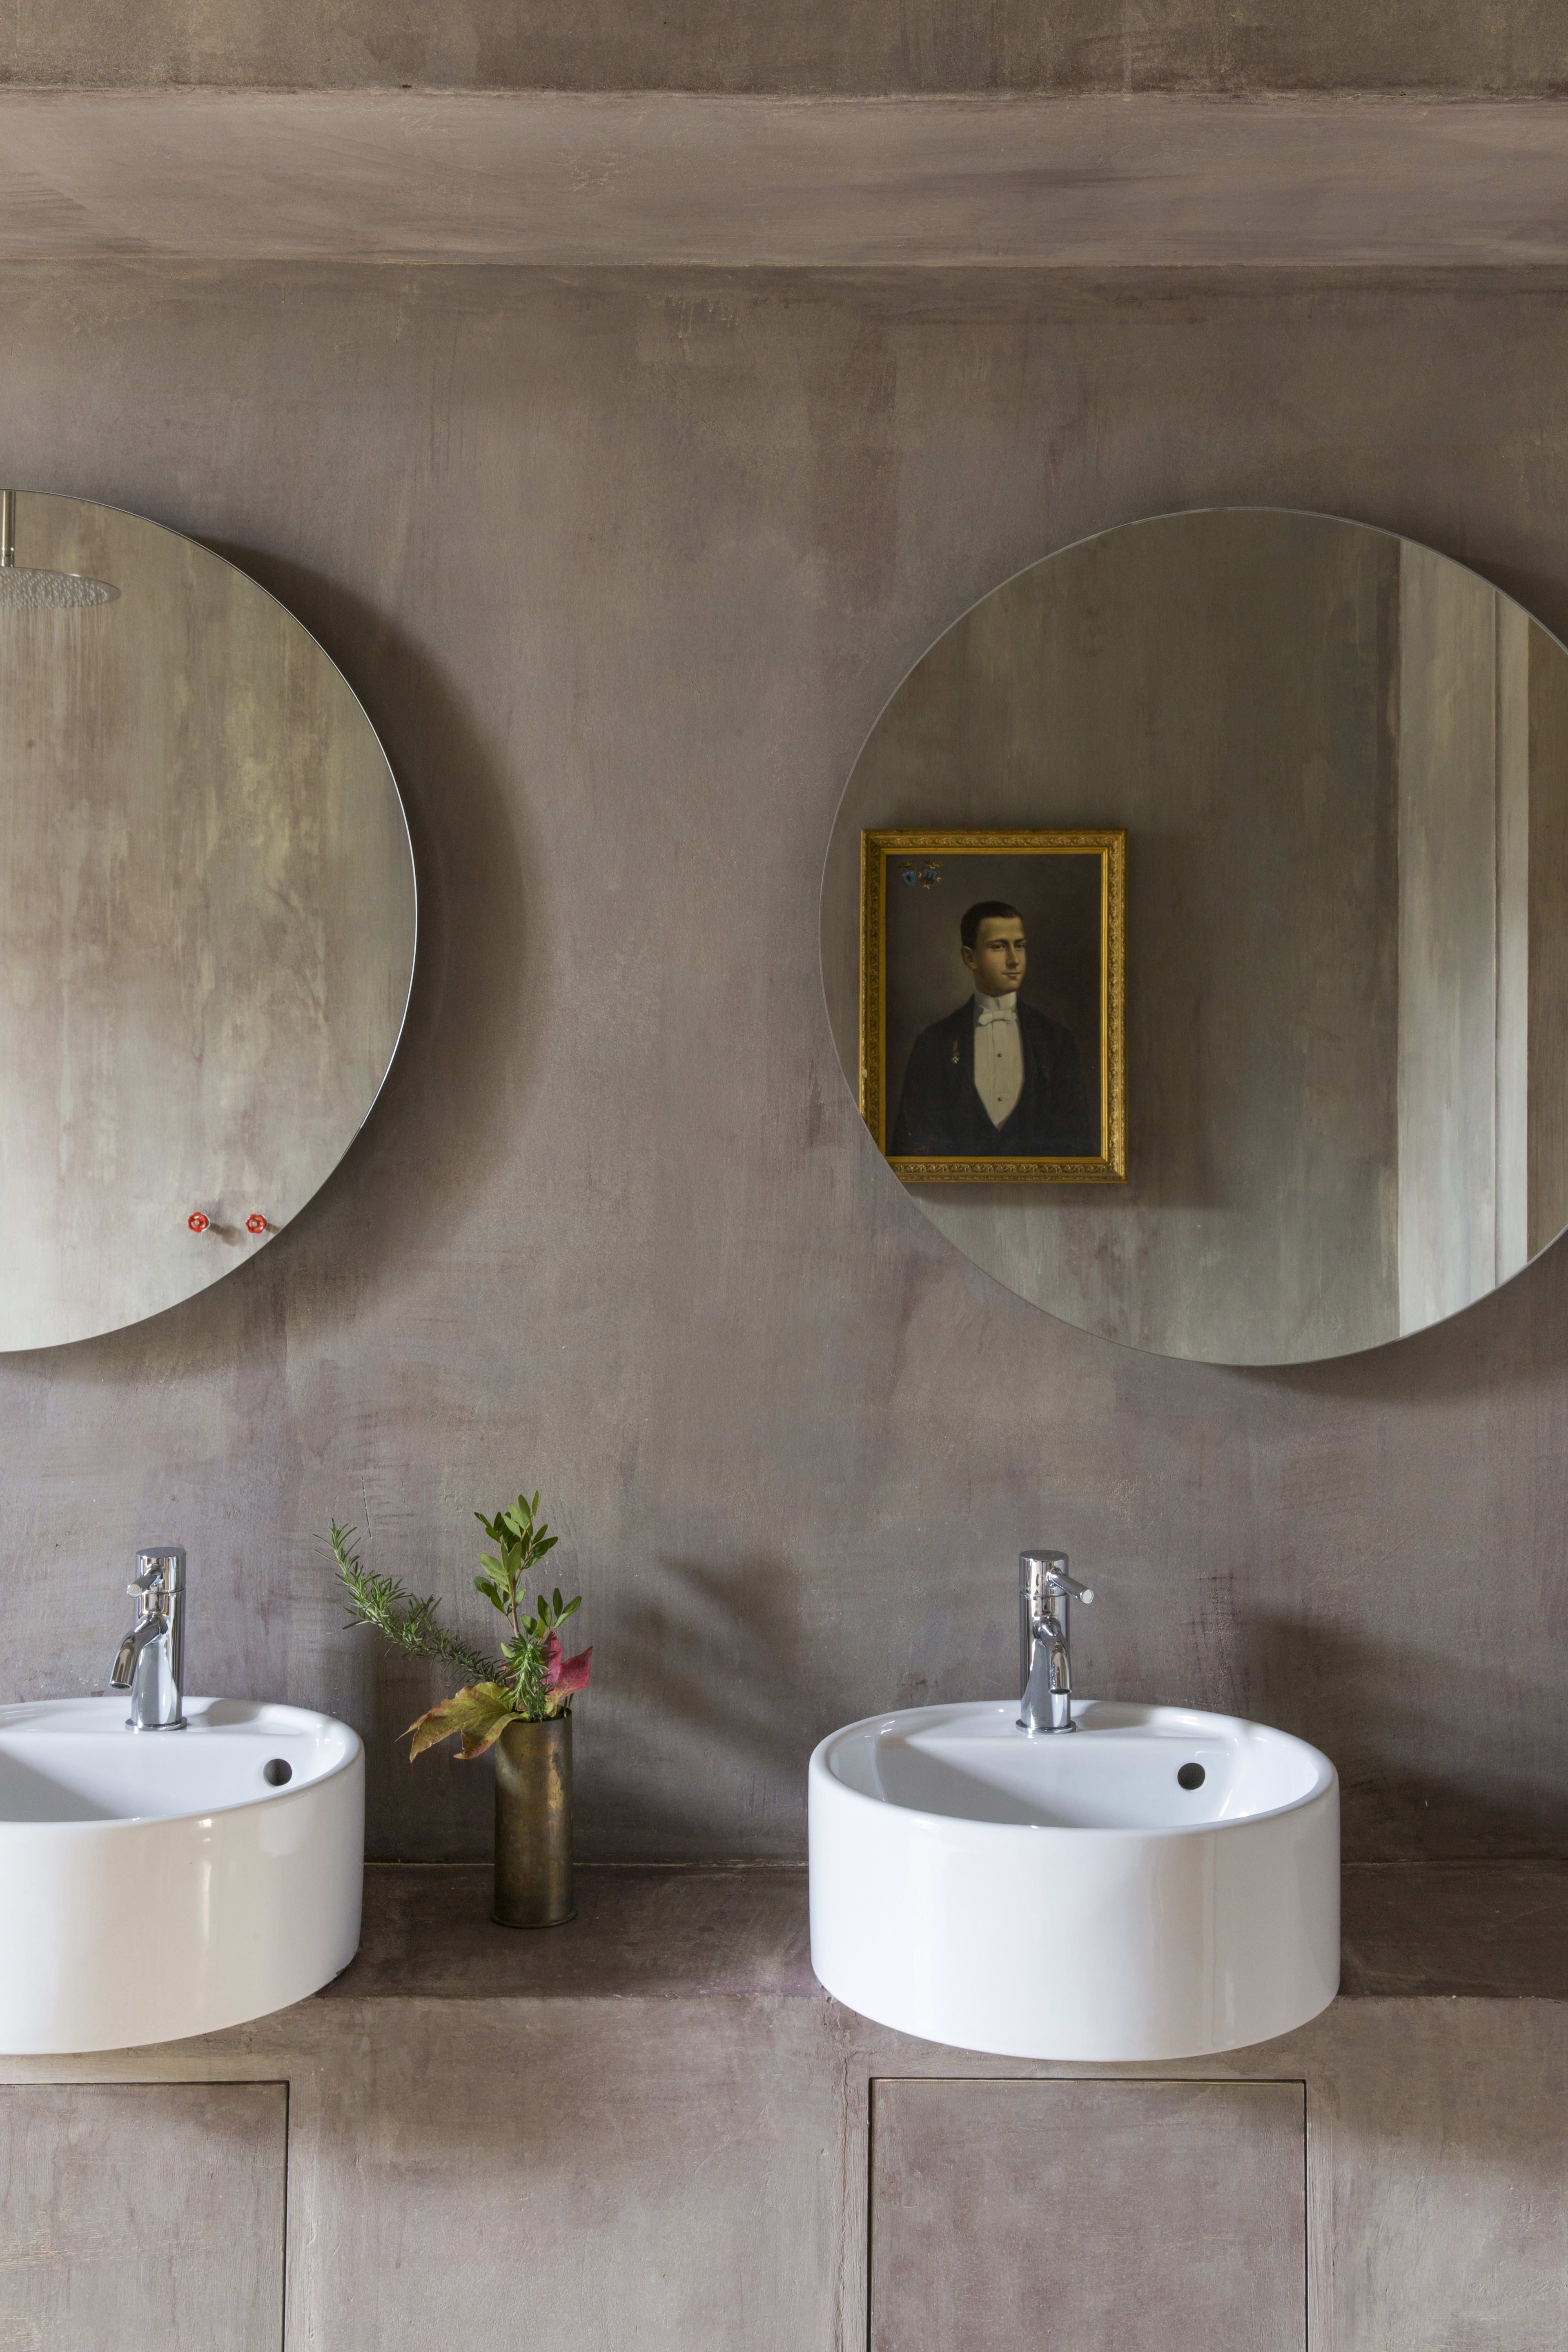 These Hotels In Italy Will Convince You To Book Your Next Trip Asap Bathroom Wall Decor Bathroom Interior Design Bathroom Wall